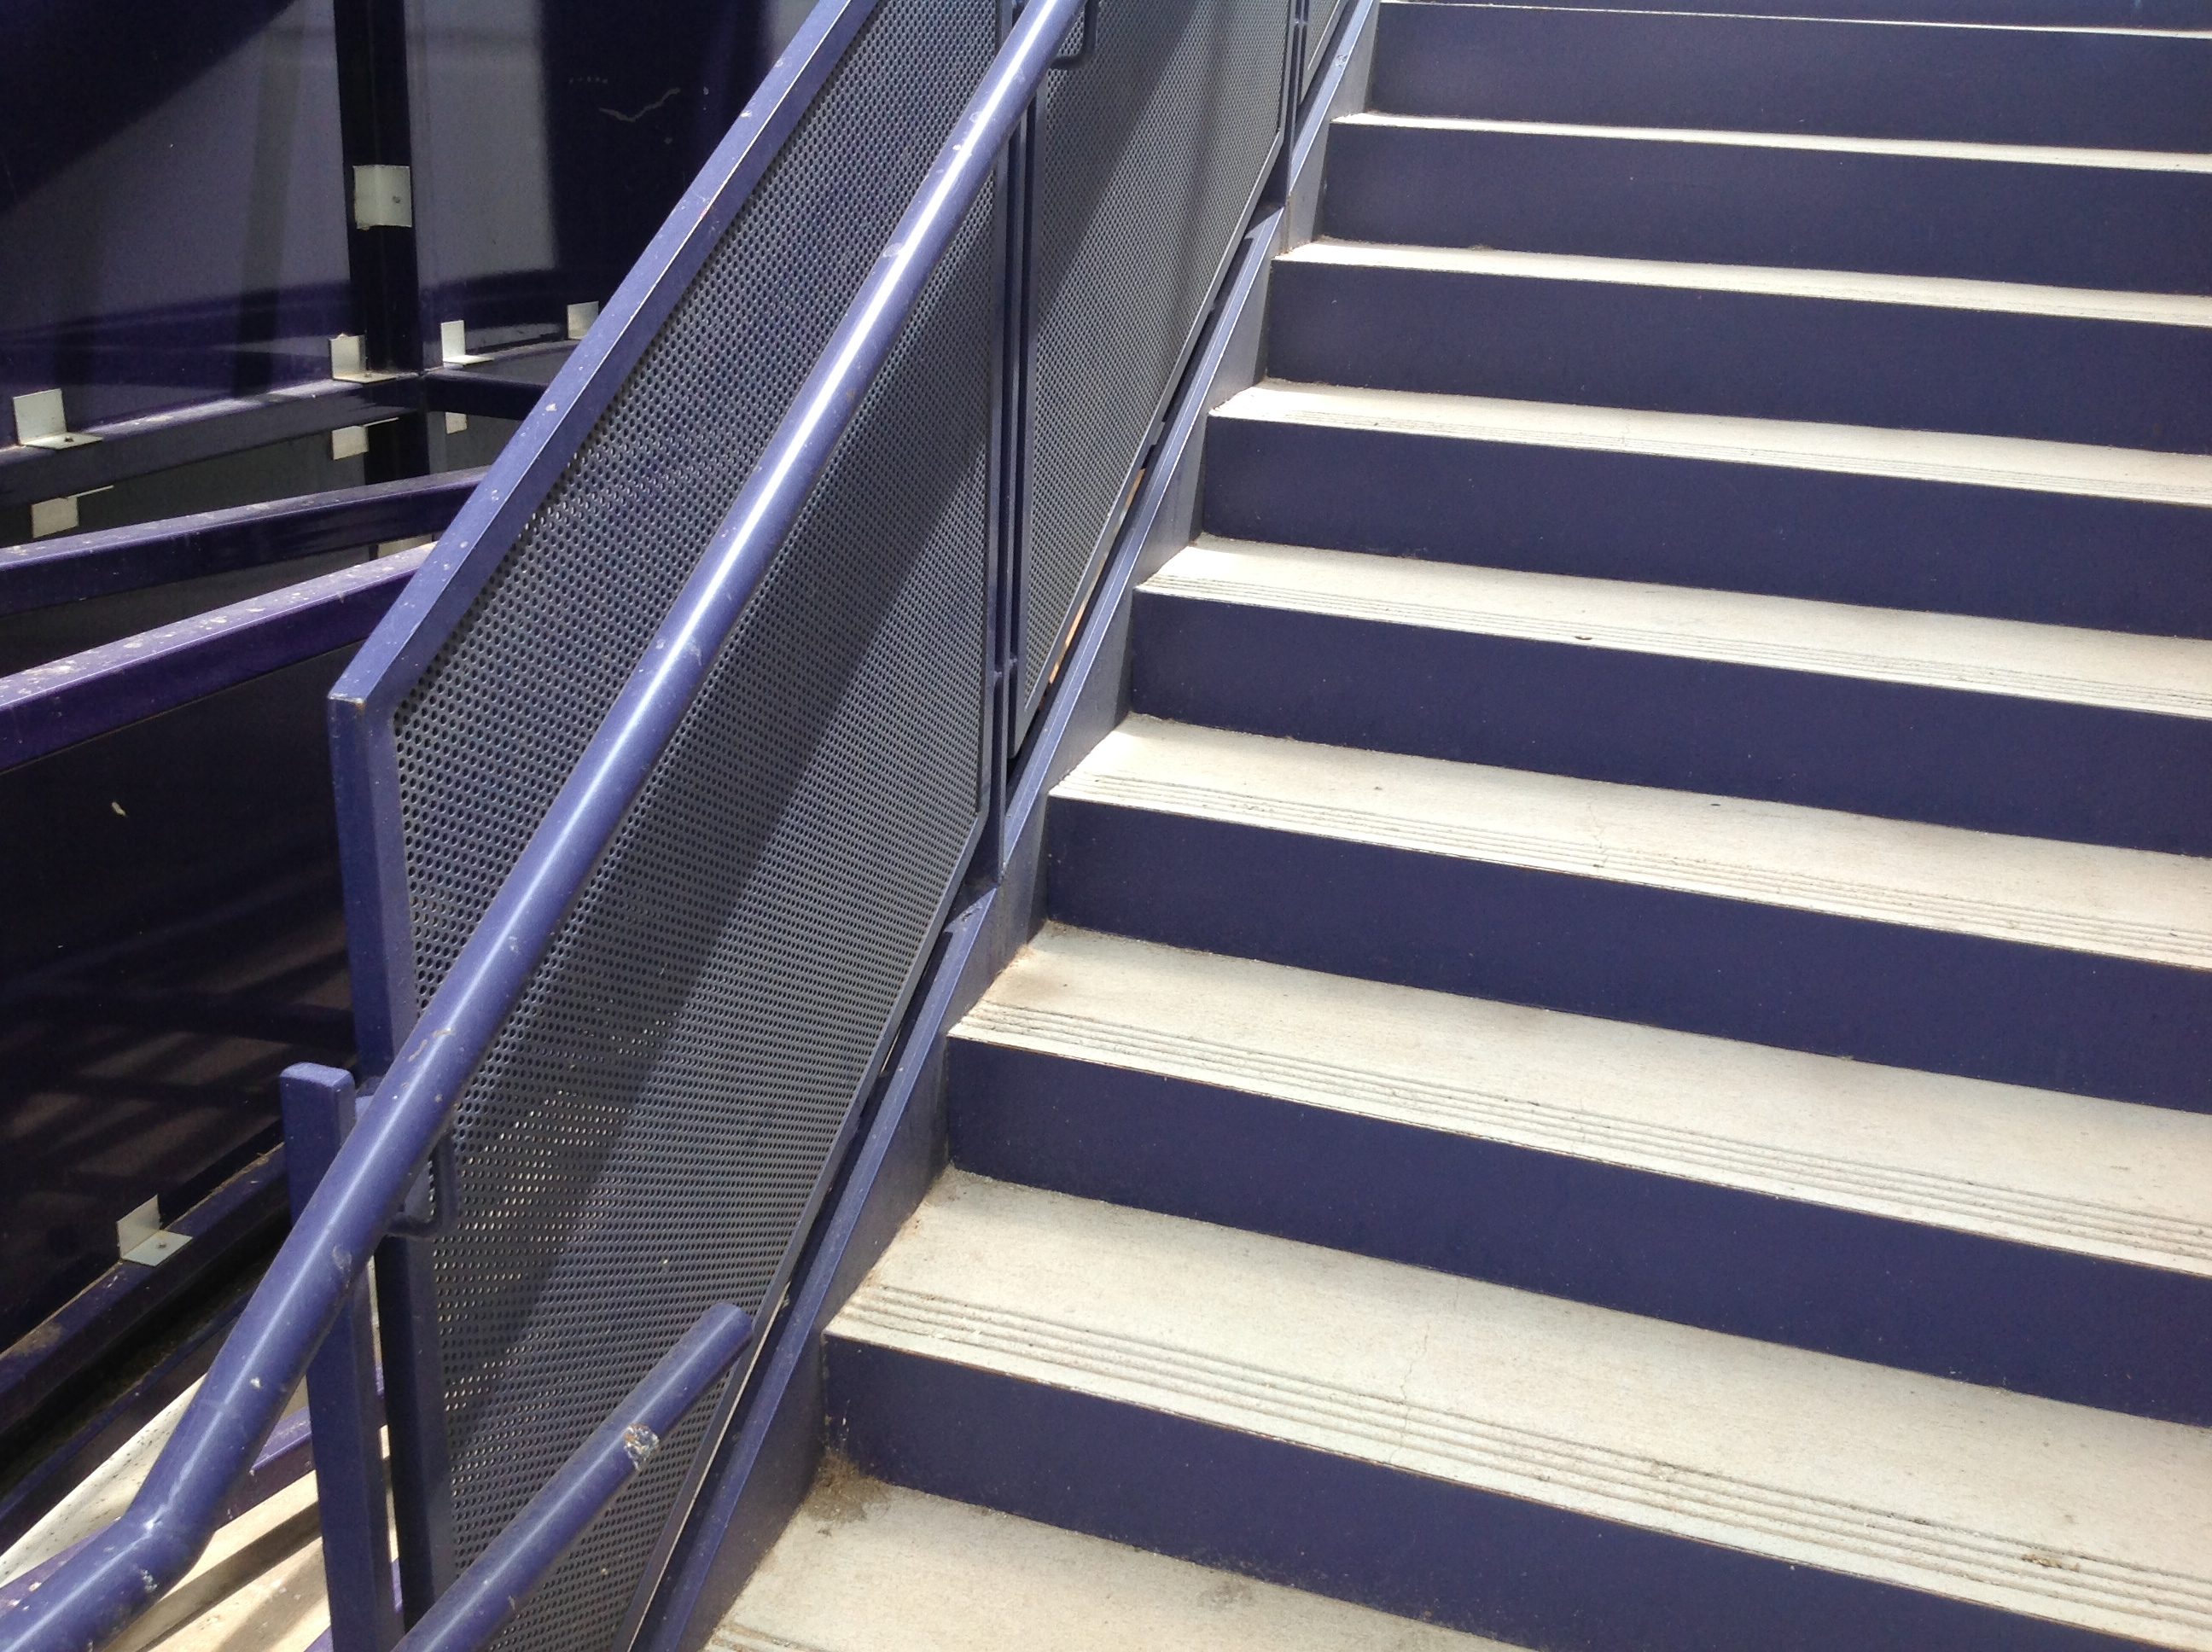 Stair System With Perforated Guardrail Panels